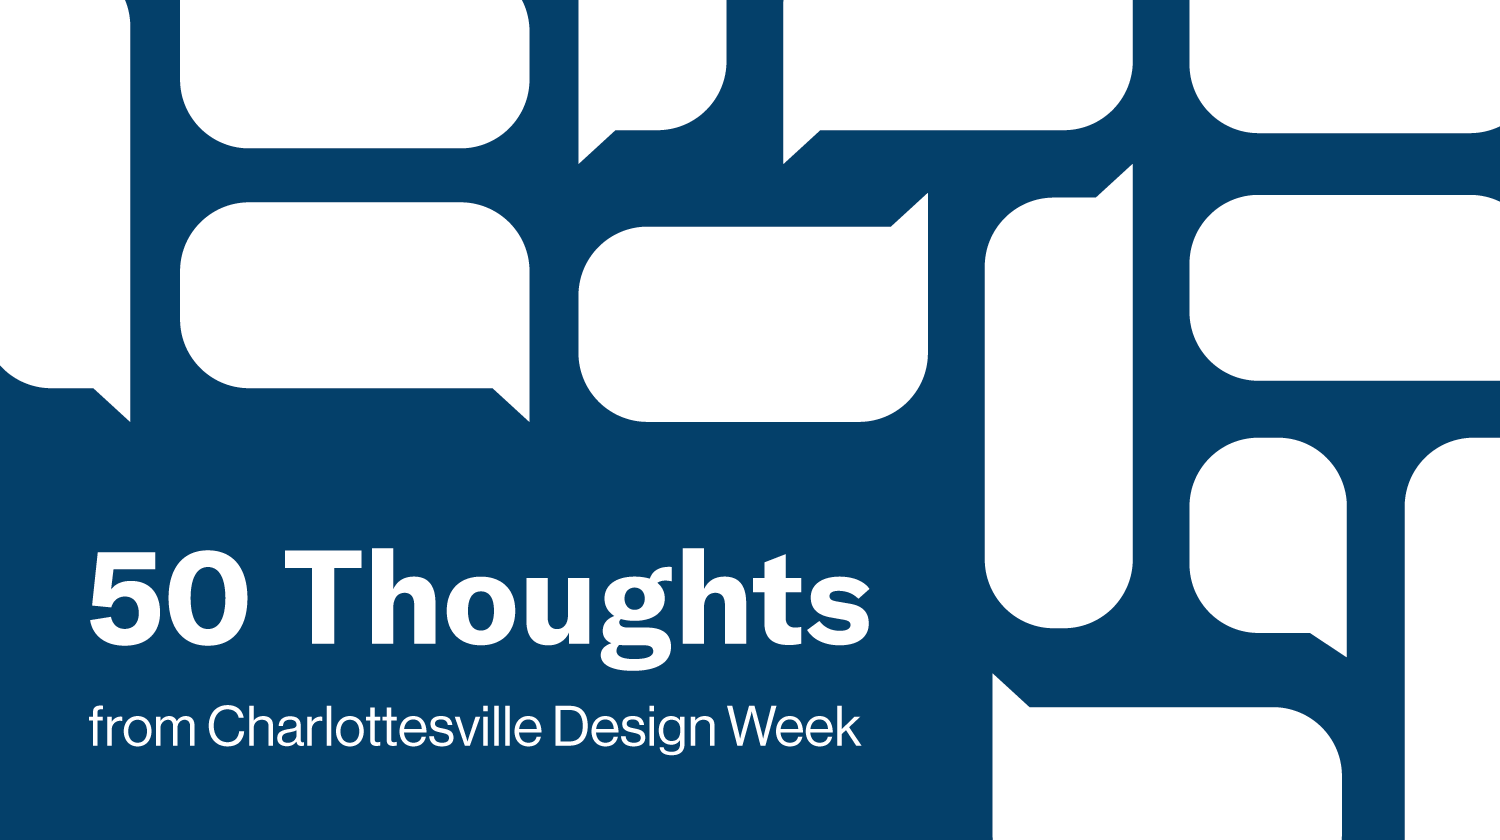 thought bubbles and title of 50 Thoughts from Charlottesville Design Week